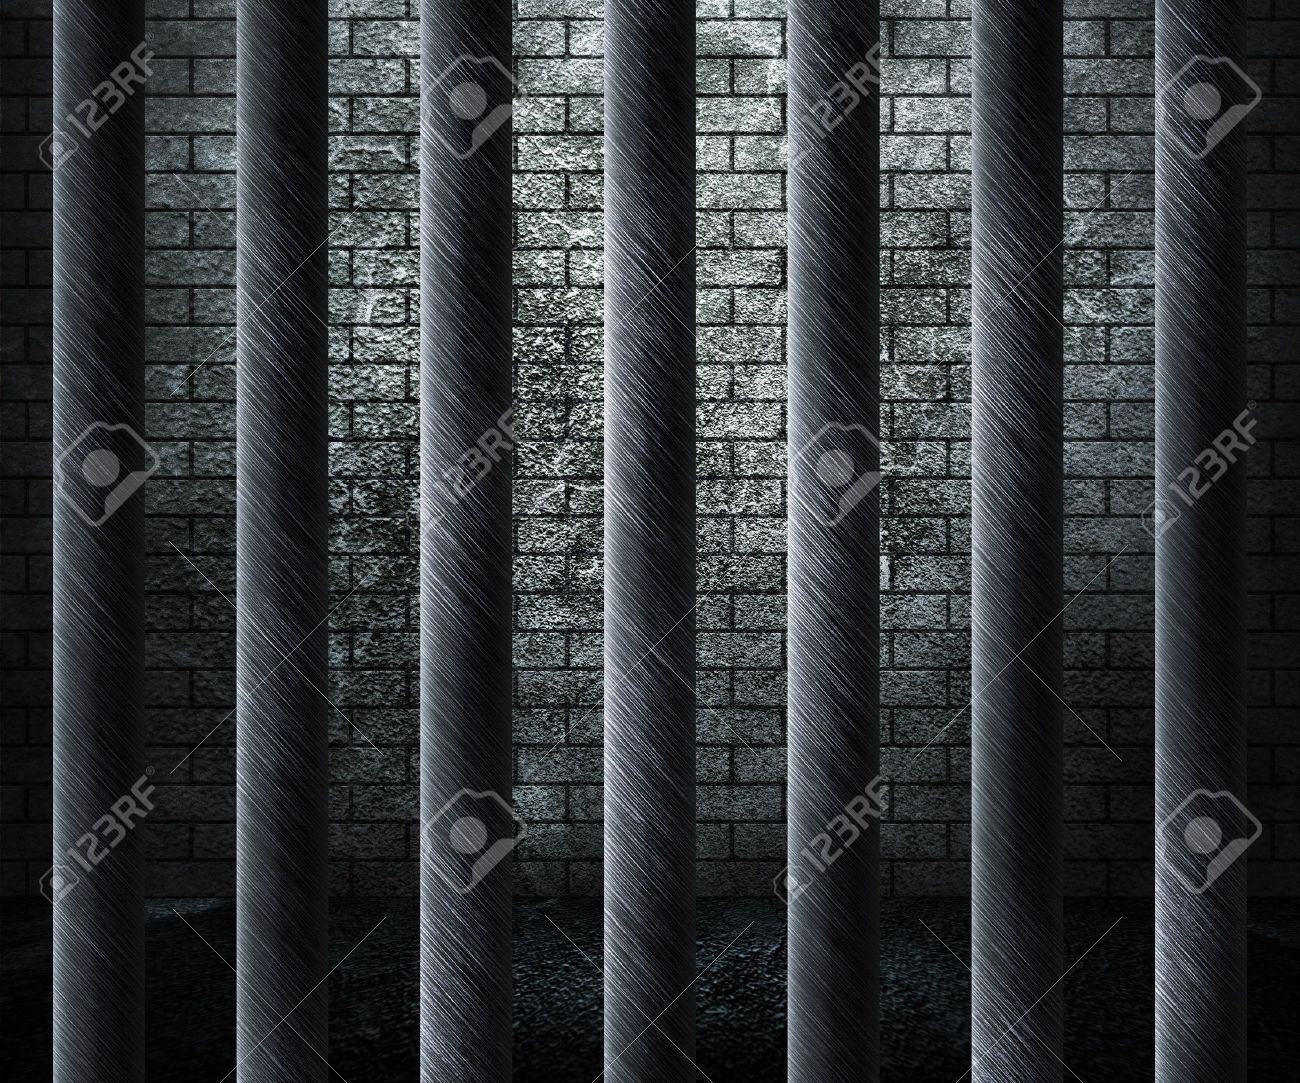 Prison Cell Background Stock Photo Picture And Royalty Image 1300x1083